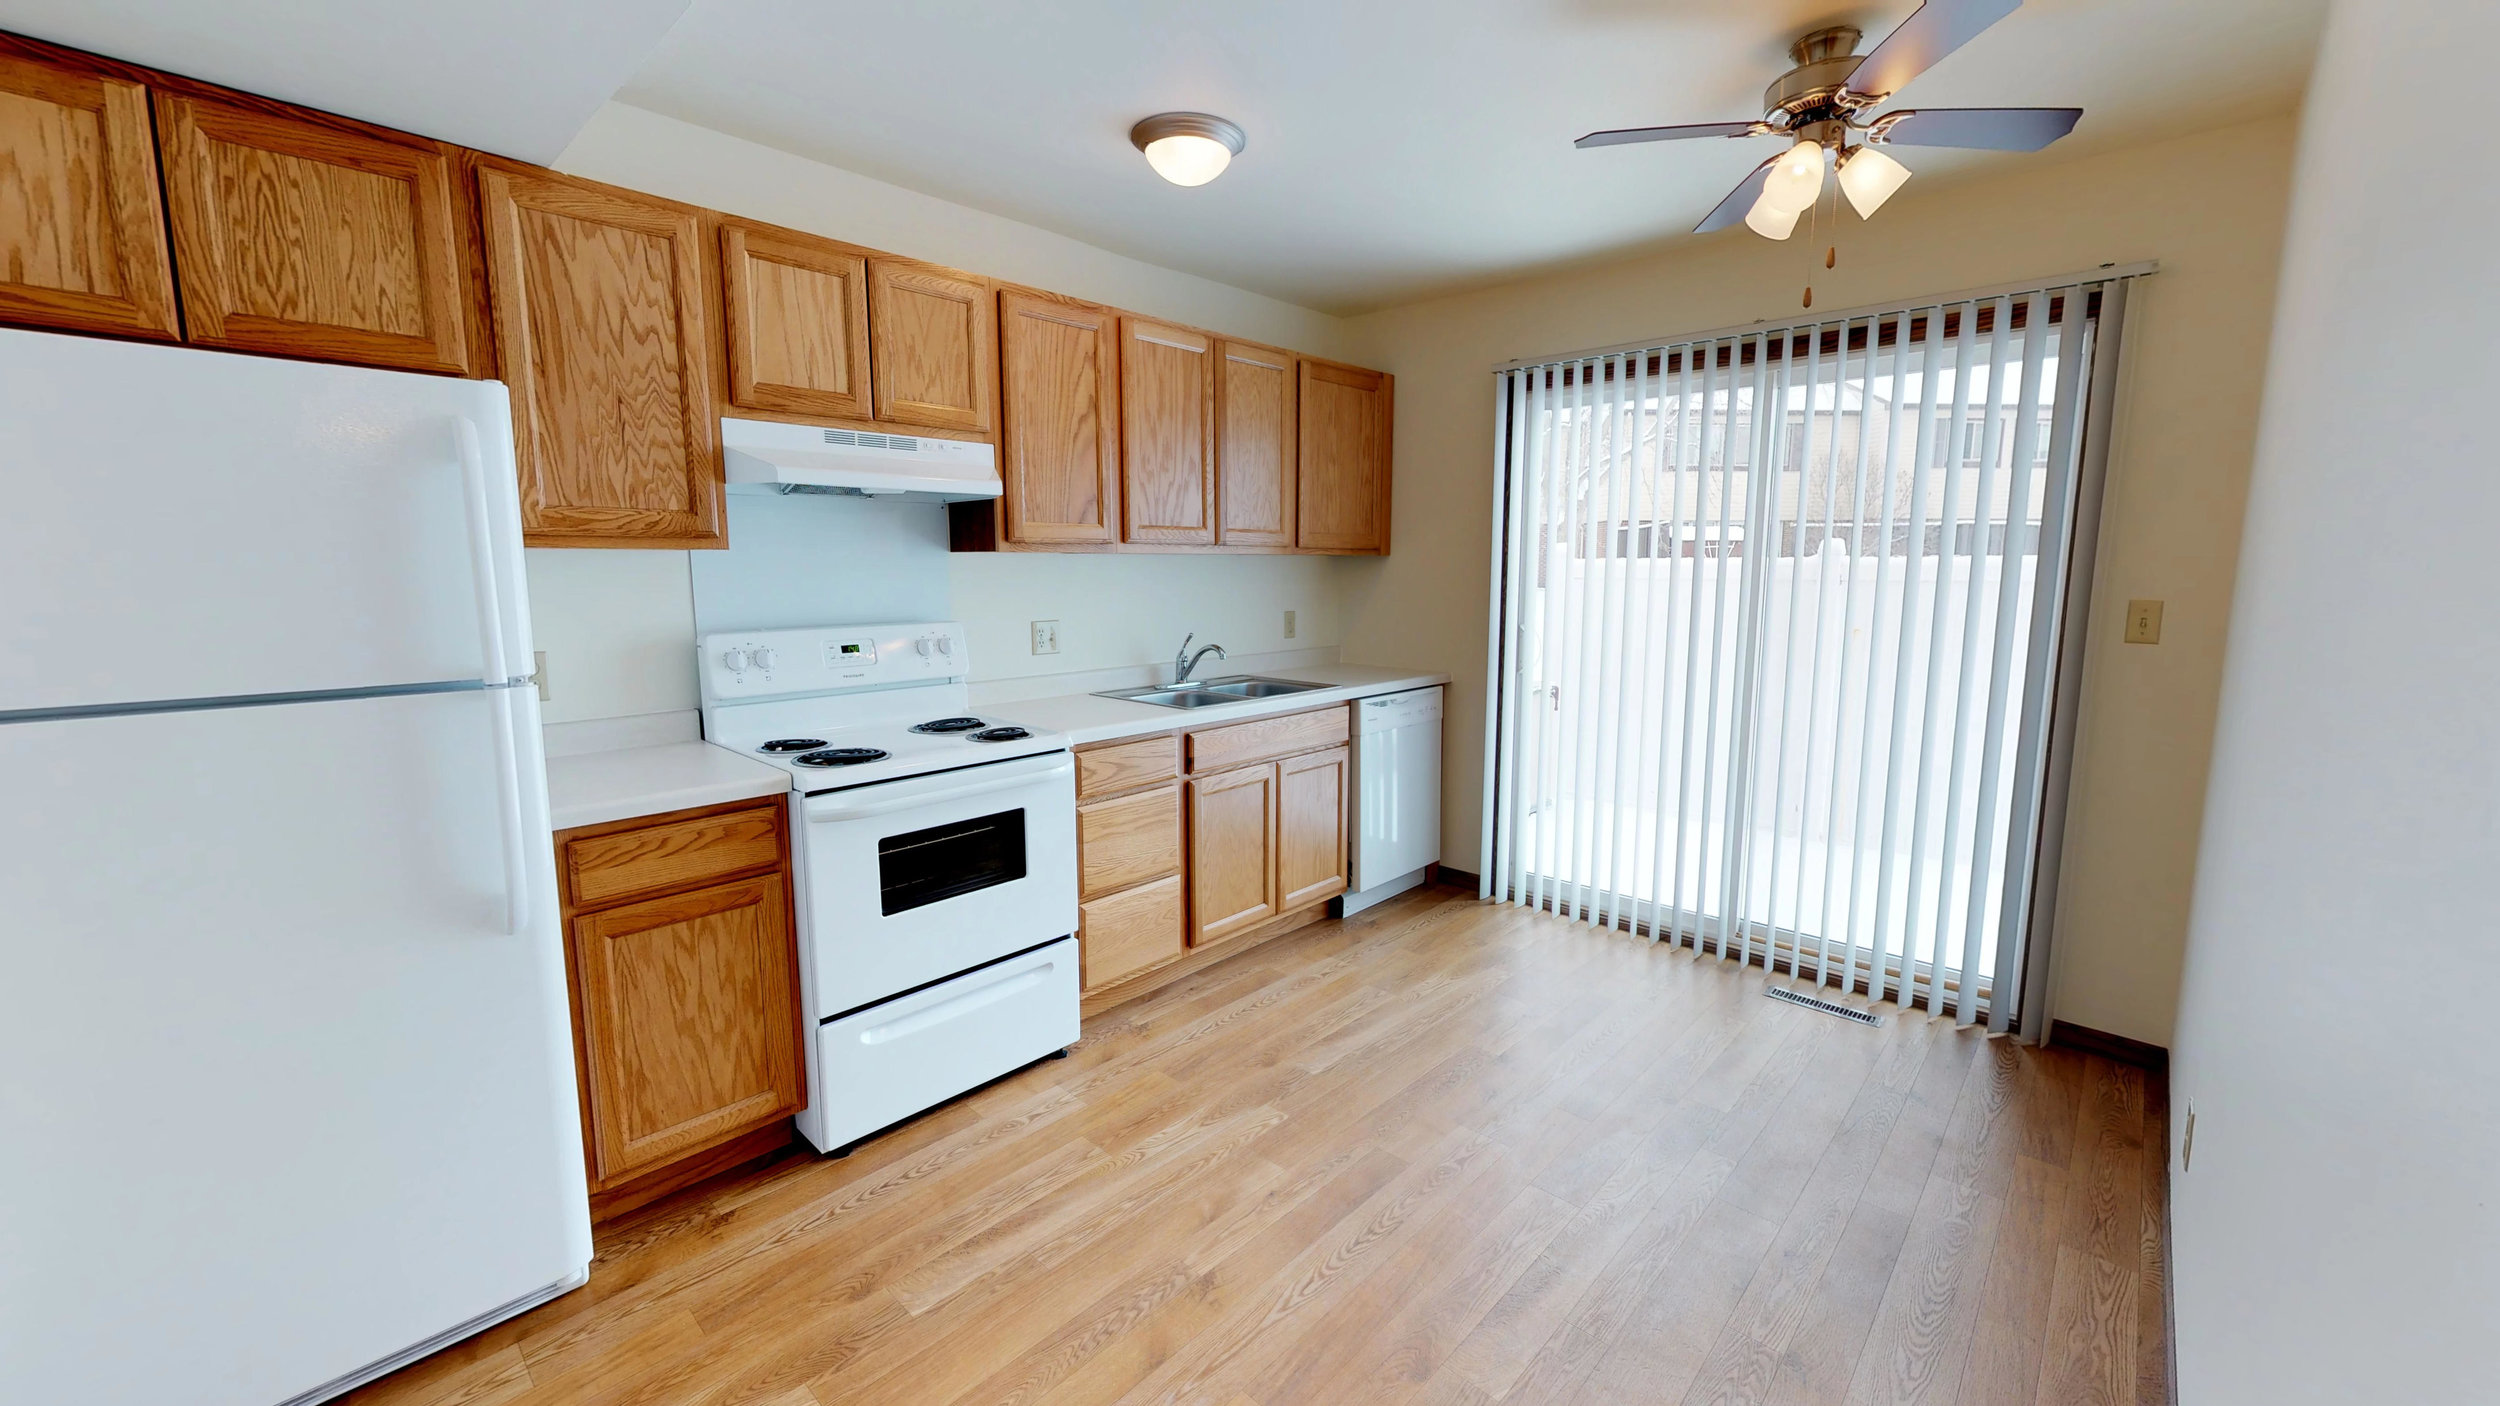 Spacious Kitchens with Tons of Storage